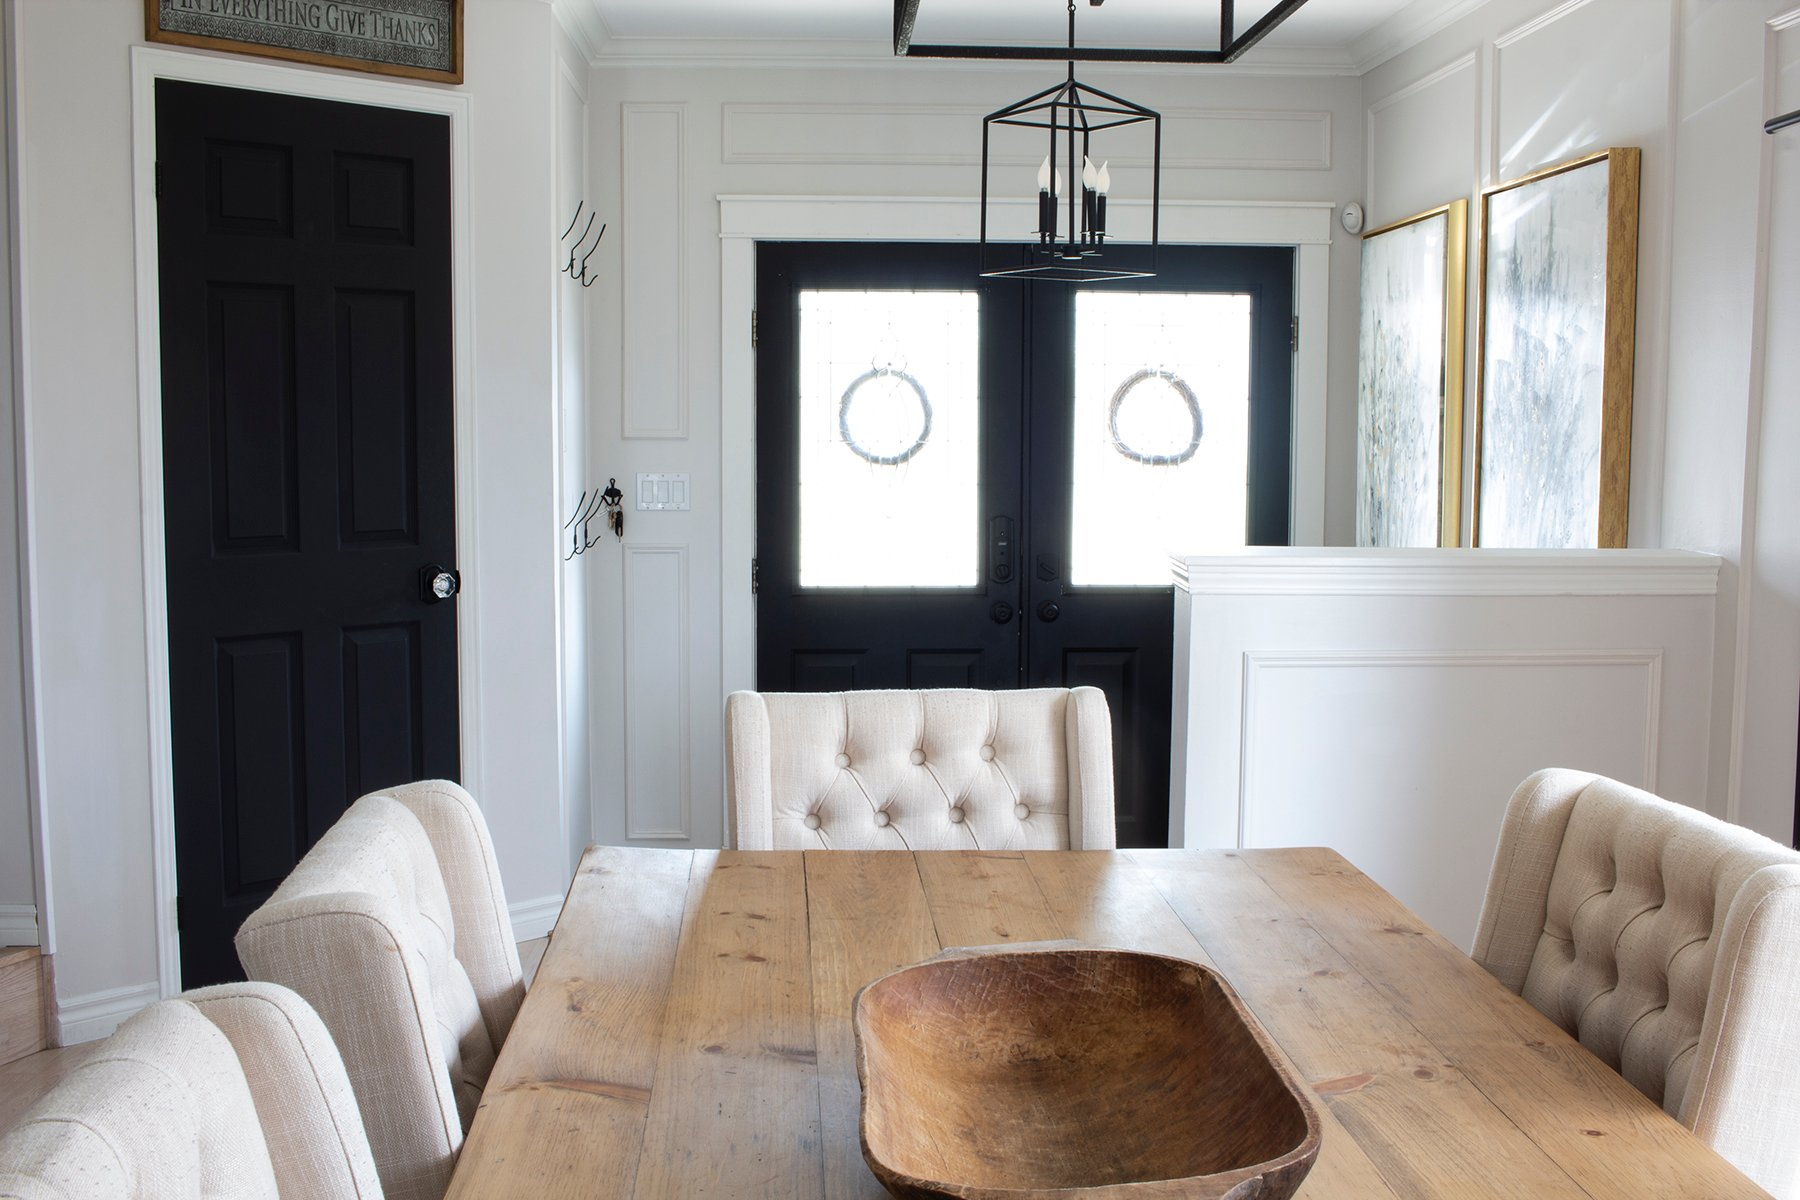 dining room with wood farmhouse table towards entry with double black doors